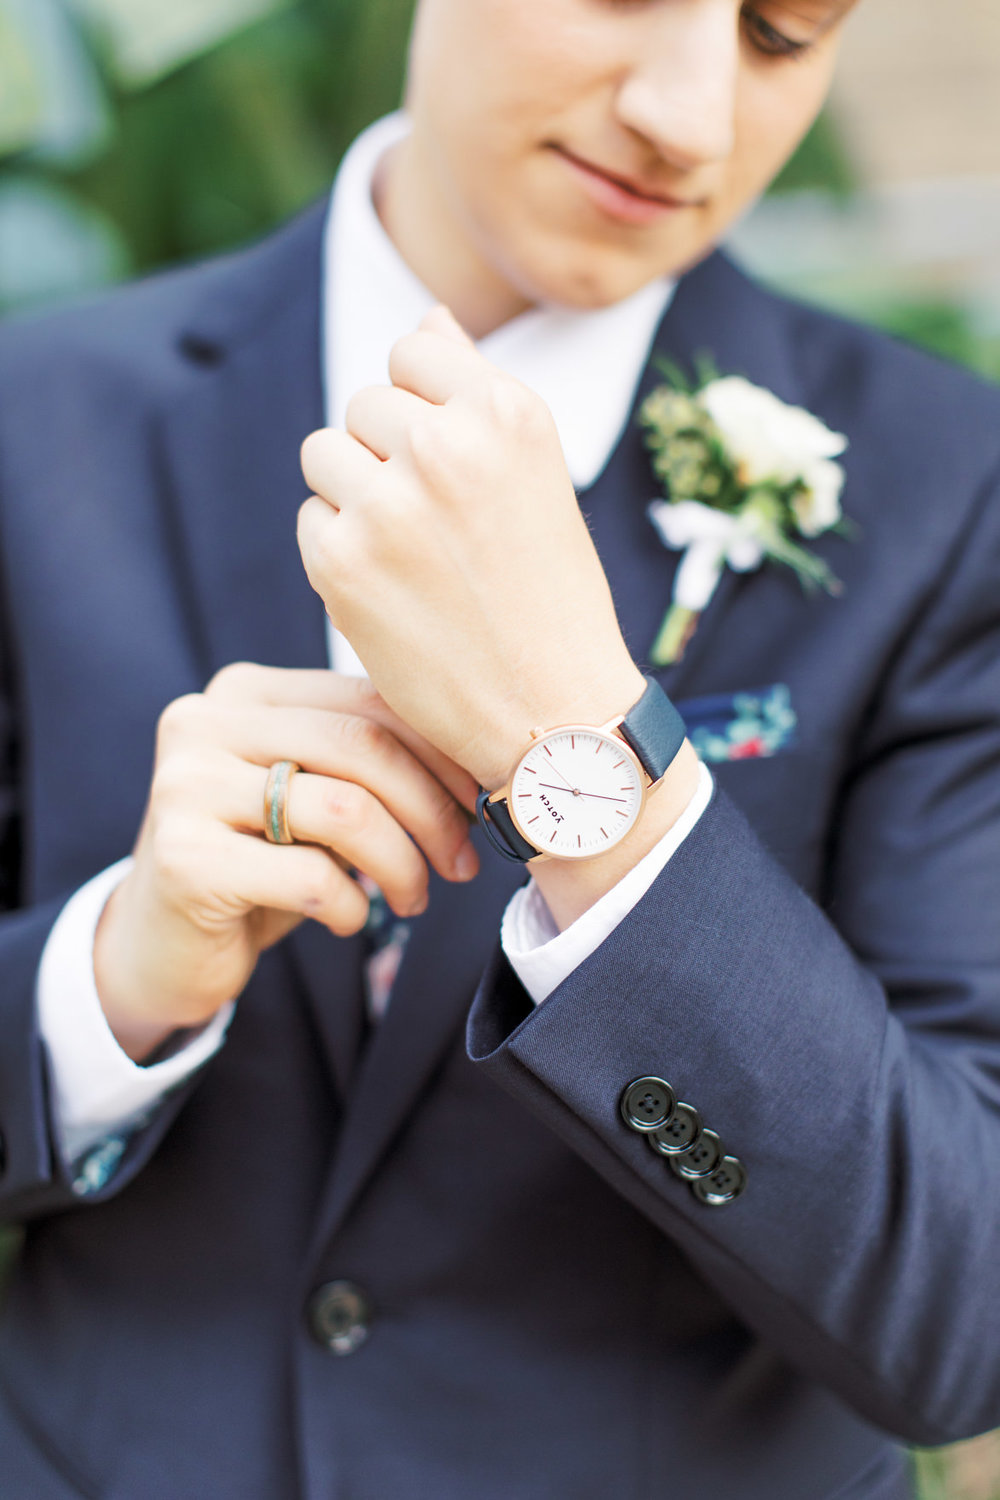 A sleek watch always adds a touch of class to a modern suit, like Dani's blue suit from her modern and elegant old city Philadelphia wedding at Power Plant Productions. Power Plant Production wedding photographer